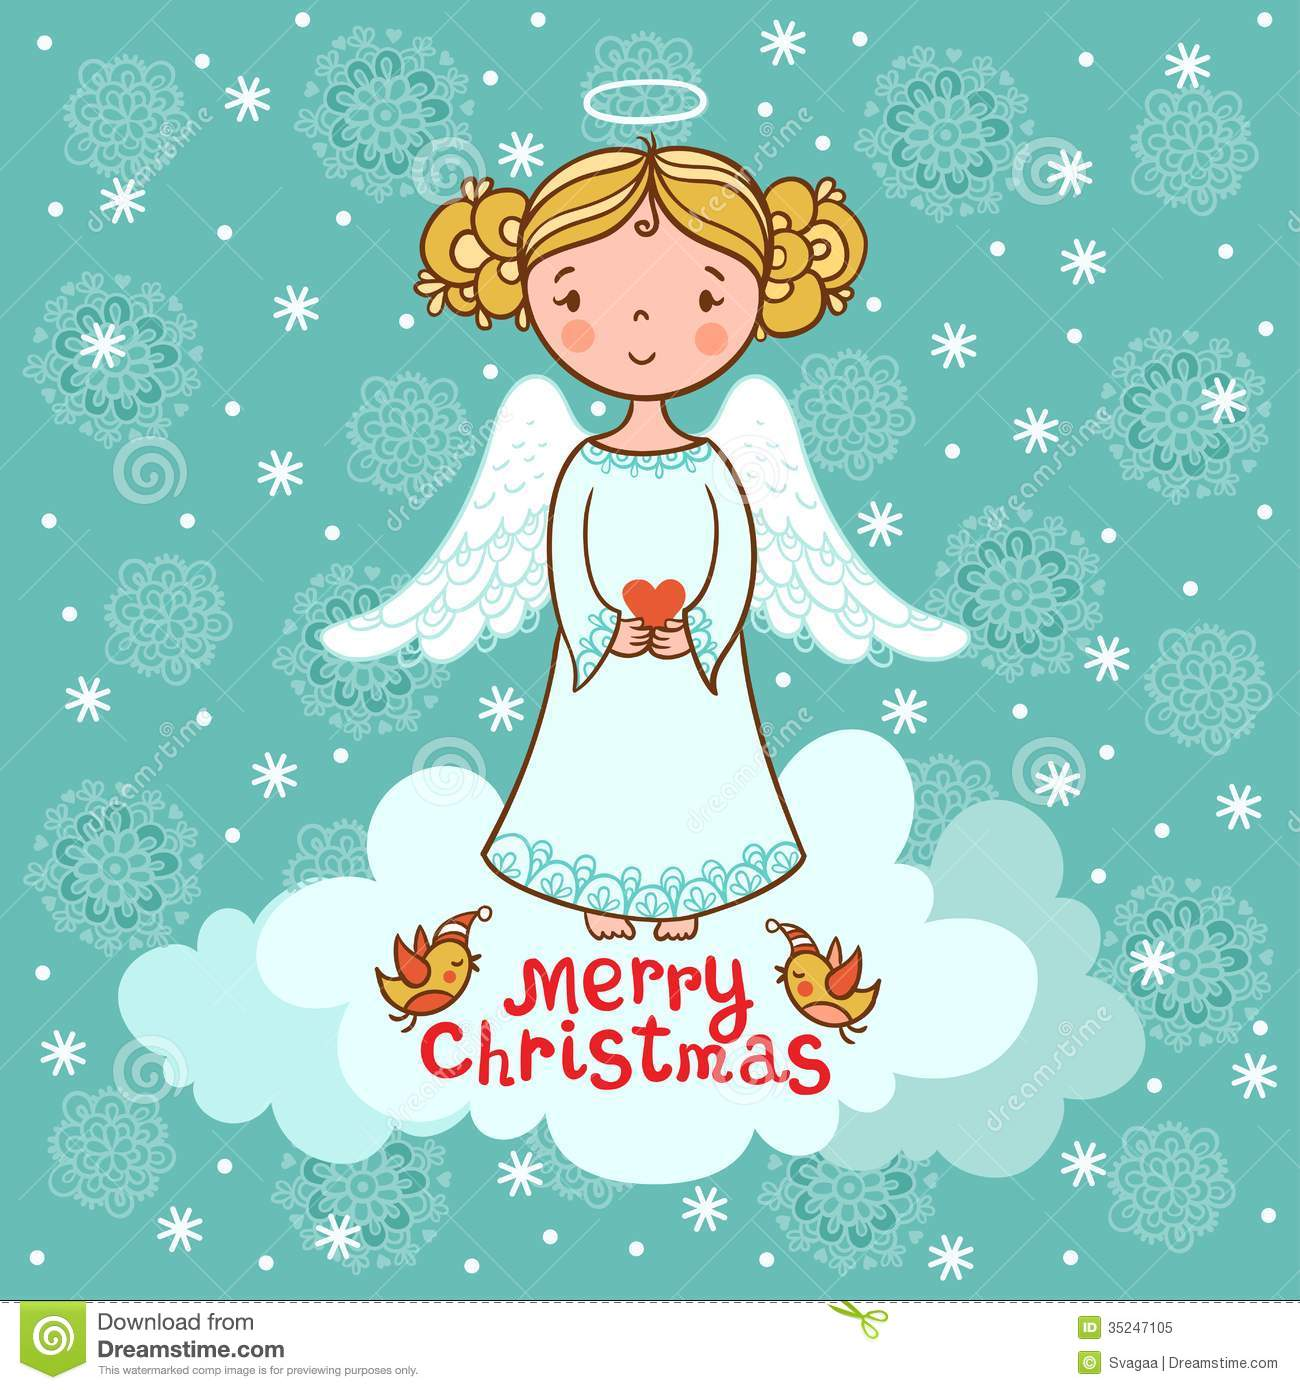 Greeting Card, Christmas Card With Angel Royalty Free Stock Photo ...